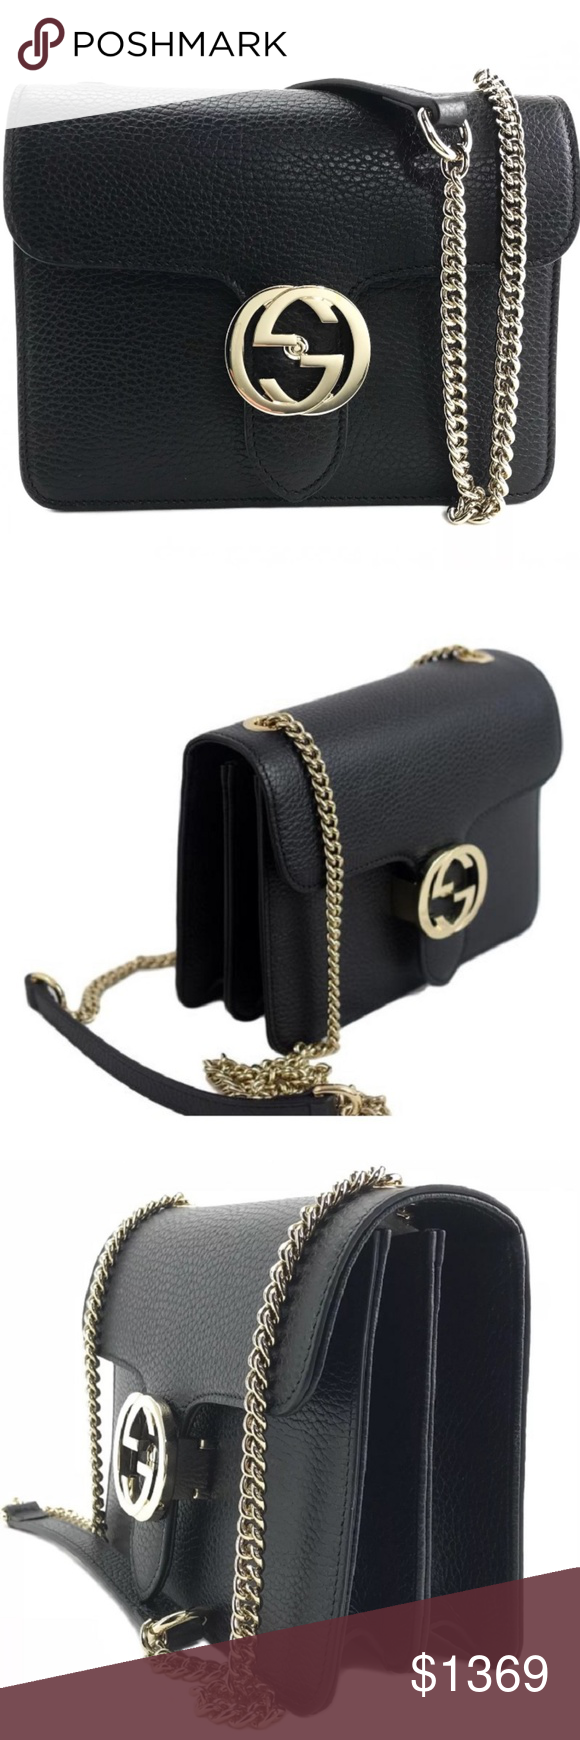 b0f0568cb99 Gucci Purses · Gucci GG Closure Leather Chain Crossbody